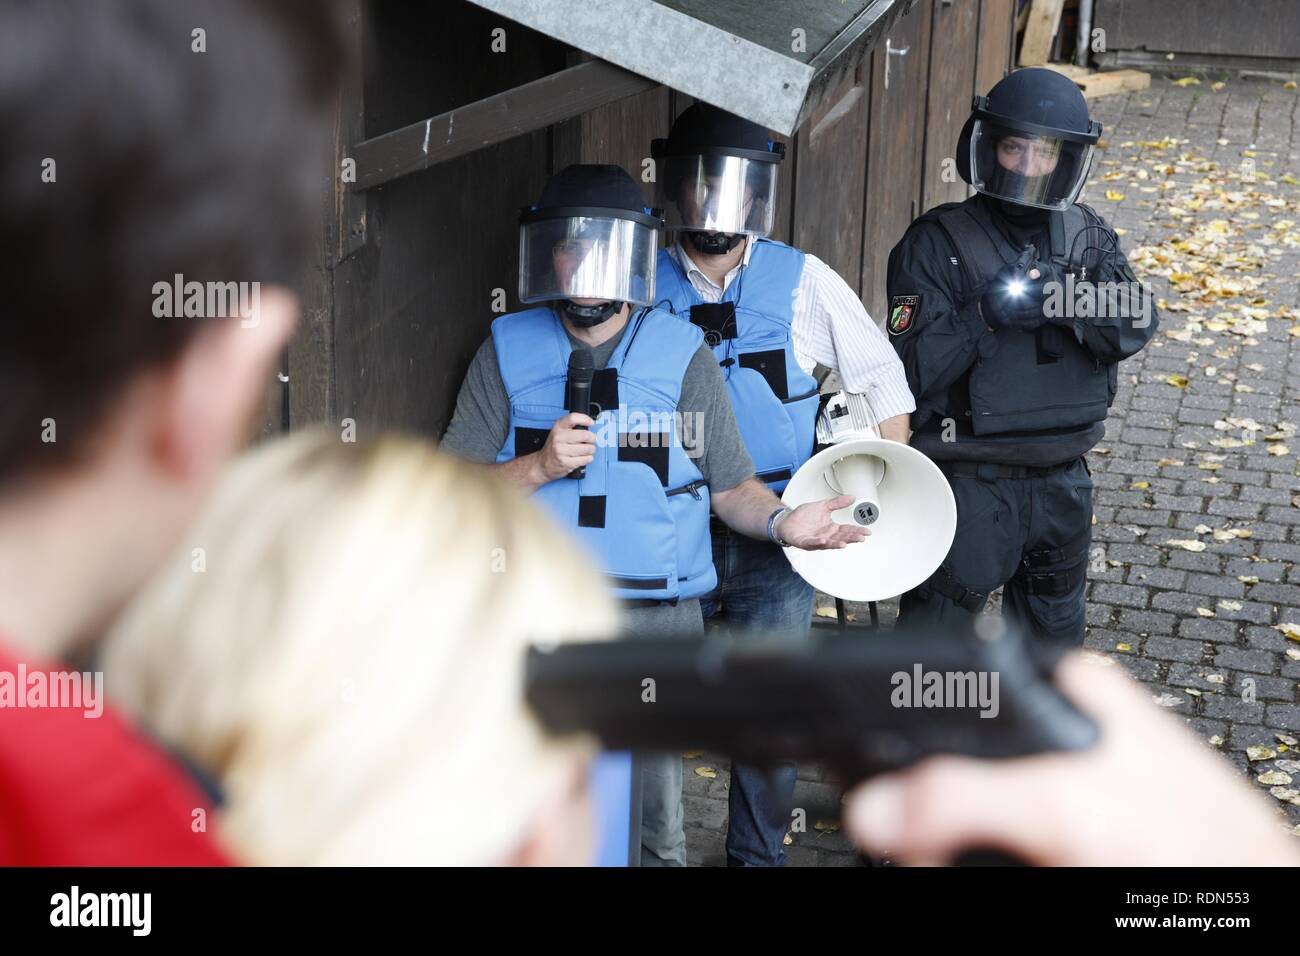 Special police unit negotiation group, operational rehearsal, a criminal is threatening a hostage with a gun, negotiators are - Stock Image